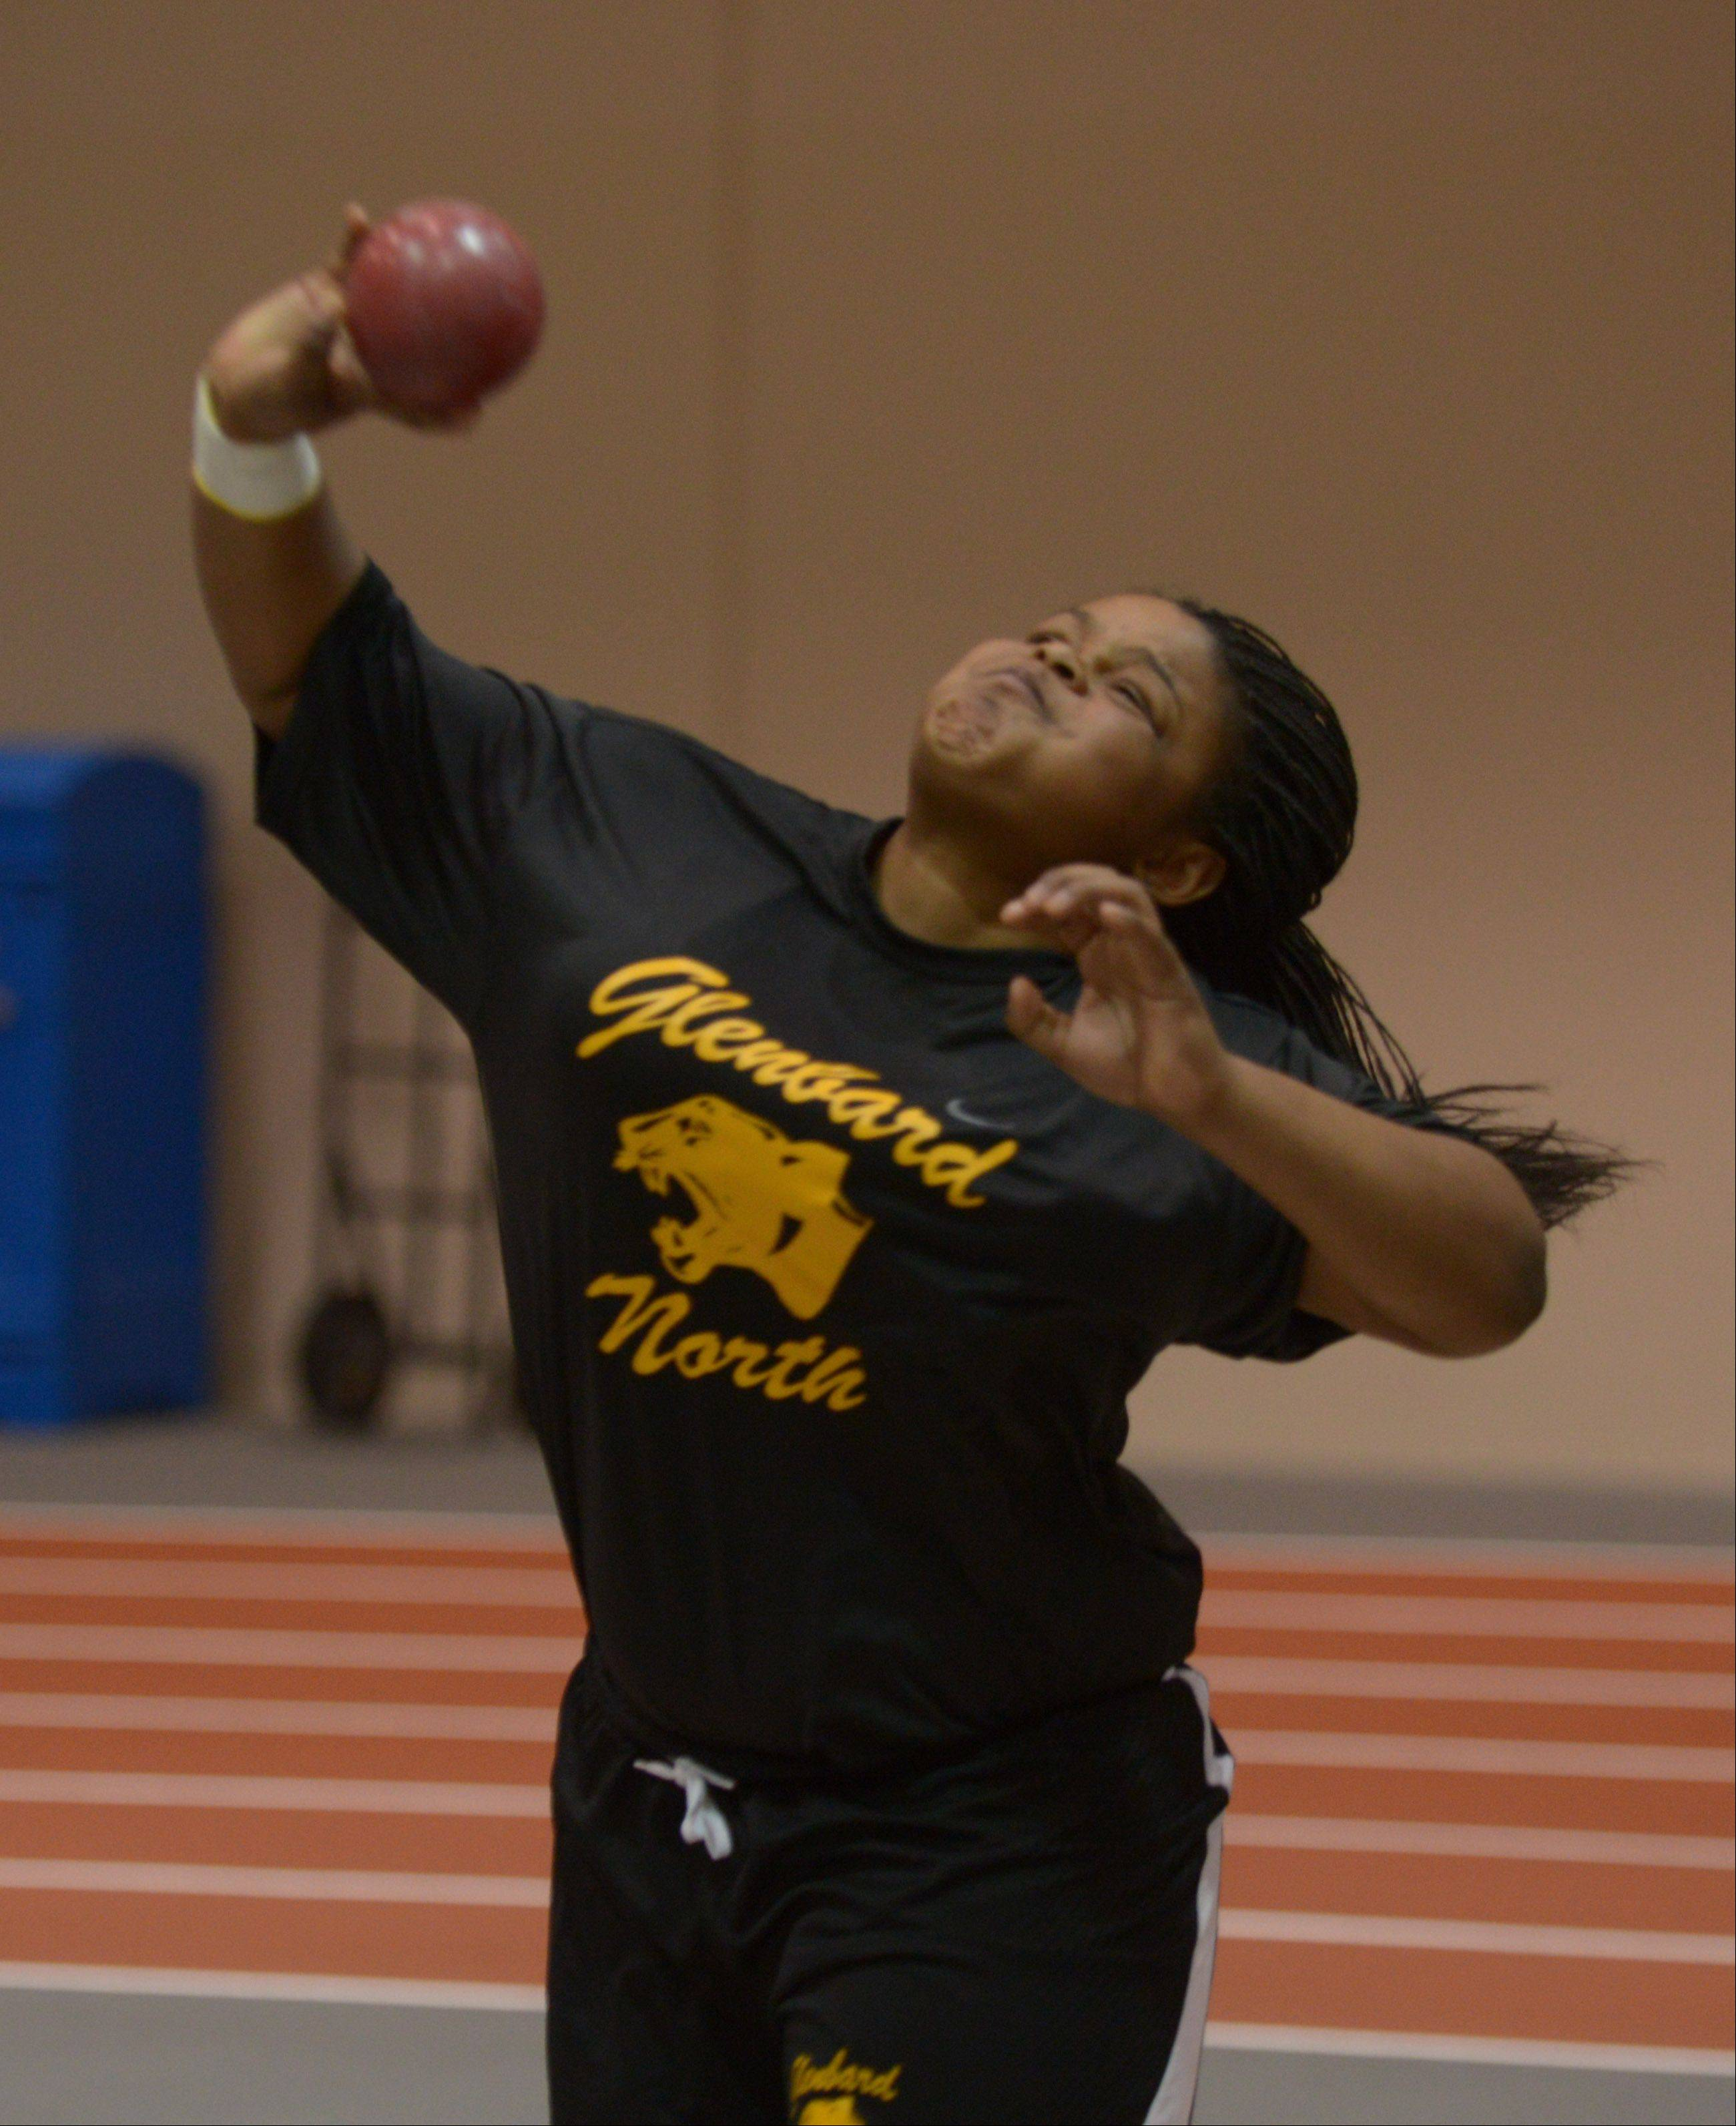 Glenbard North's Tasia Collins competes in the shot put event during the DuPage Valley Conference girls indoor track meet at North Central College Thursday.